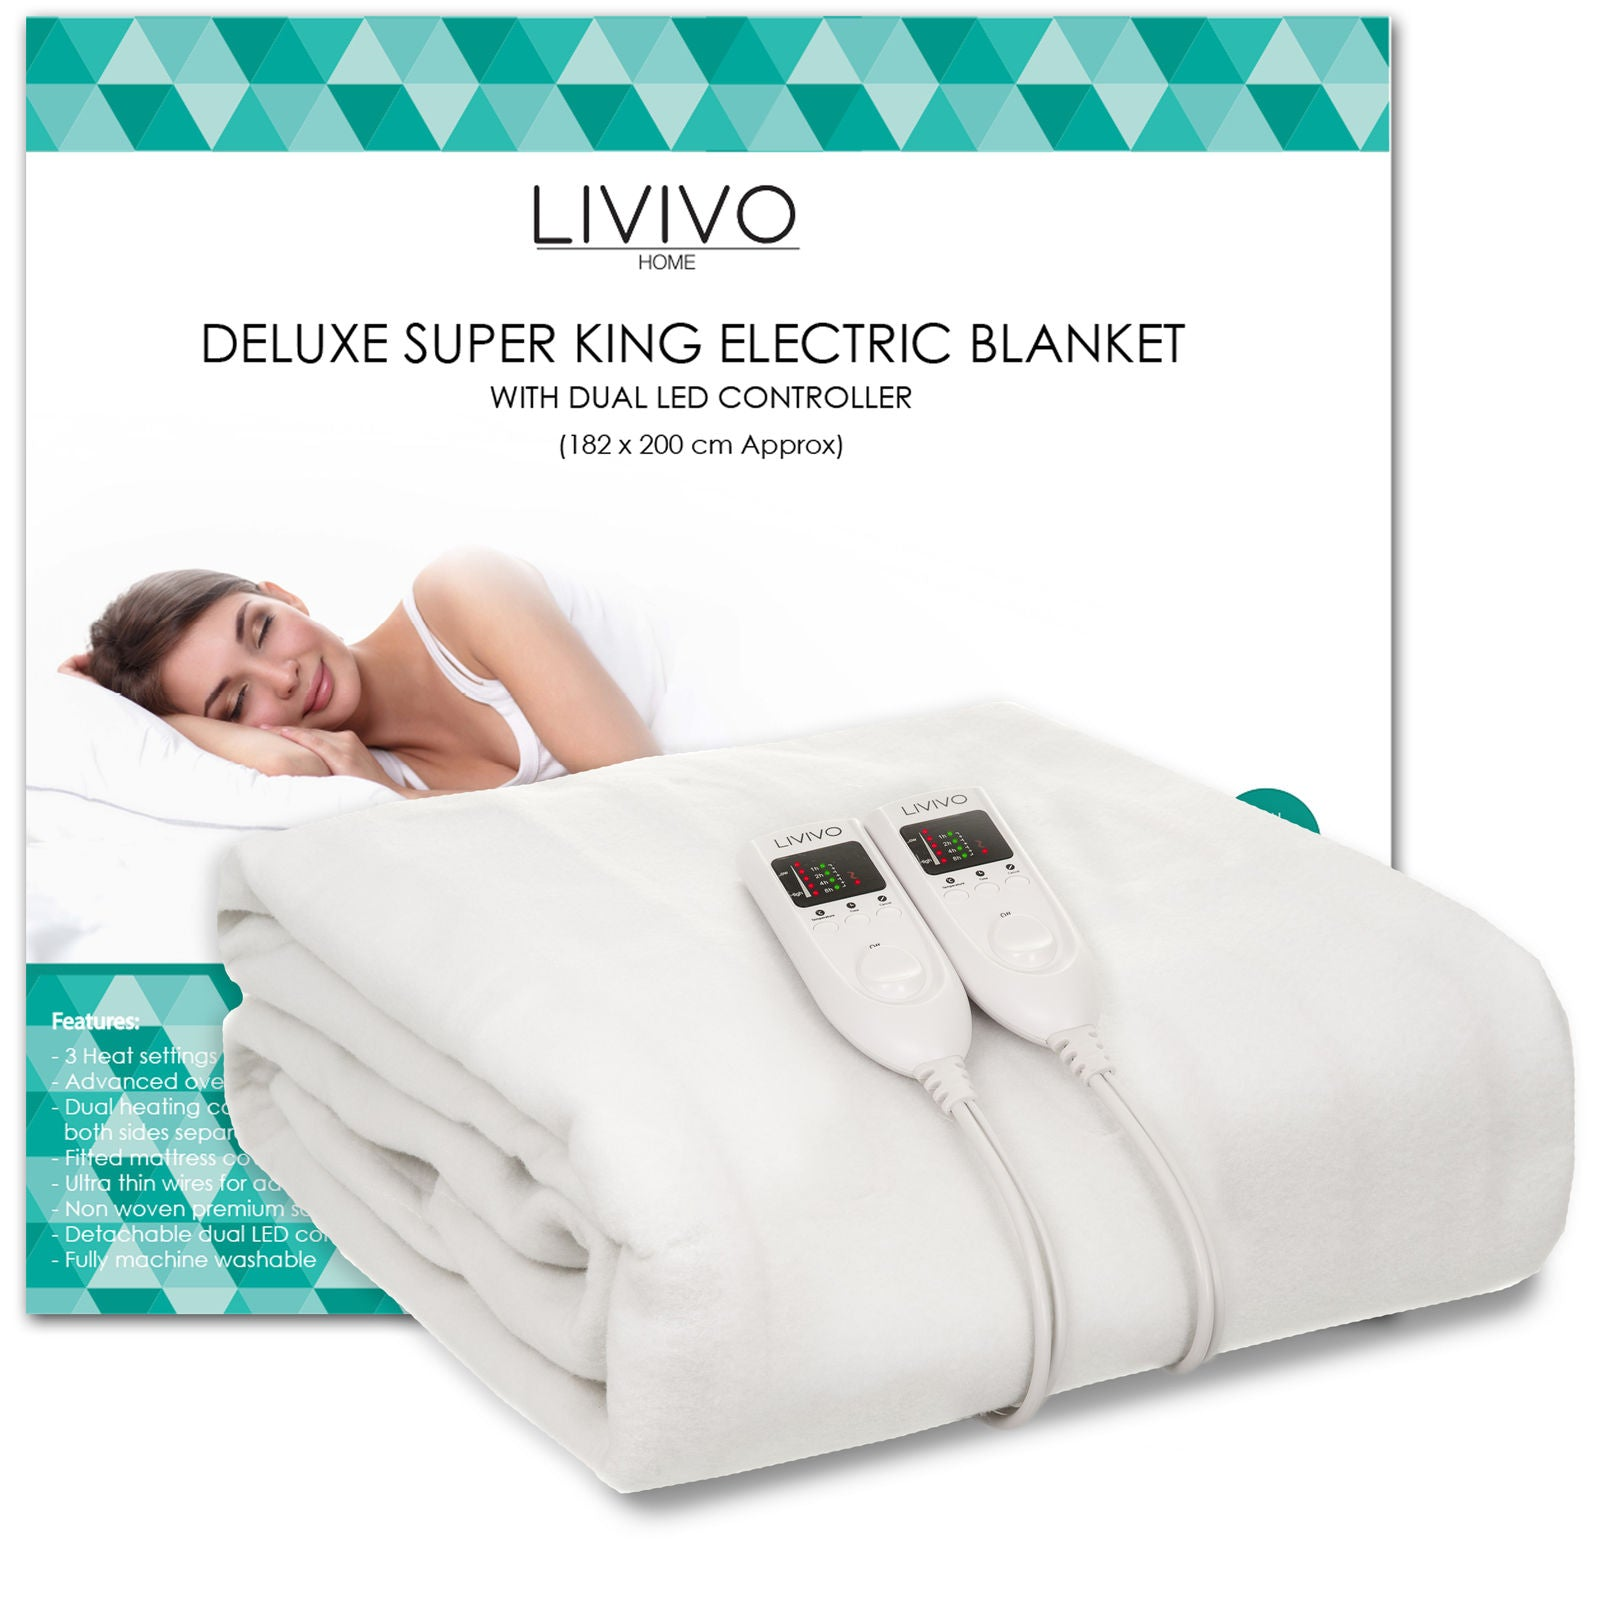 DELUXE ELECTRIC BLANKET WITH DUAL LED CONTROLLER